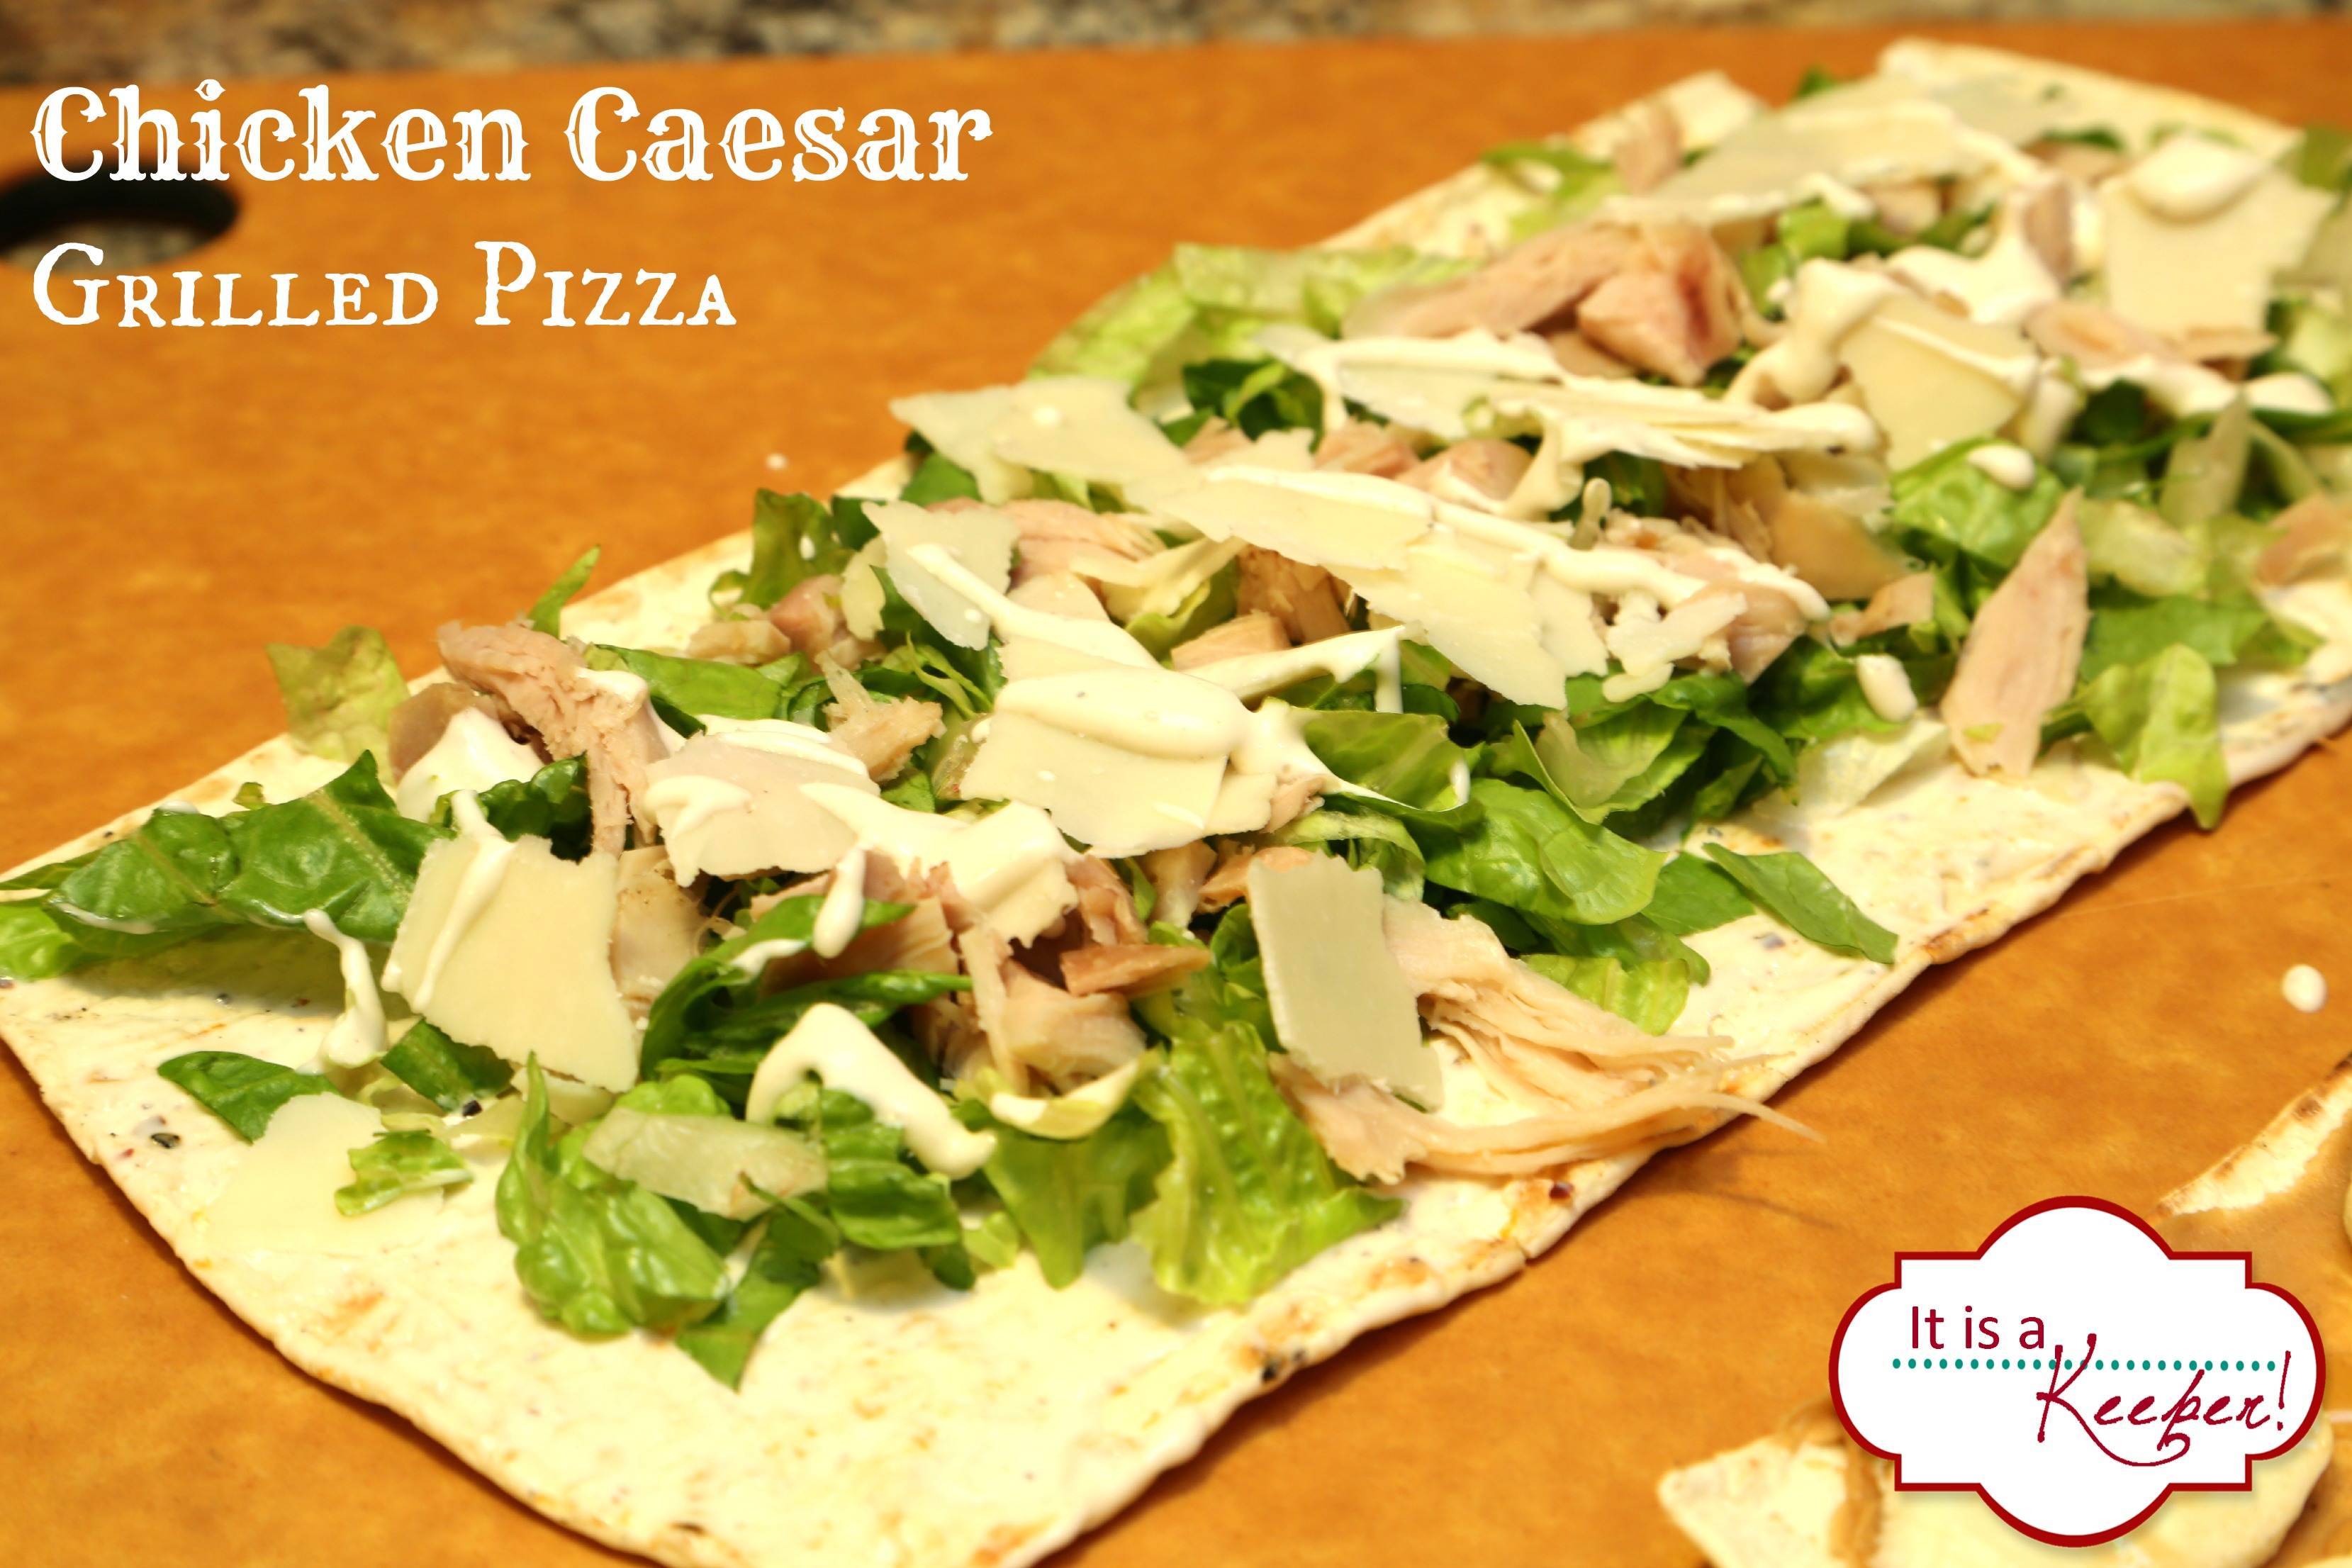 Chicken Caesar Salad Grilled Pizza